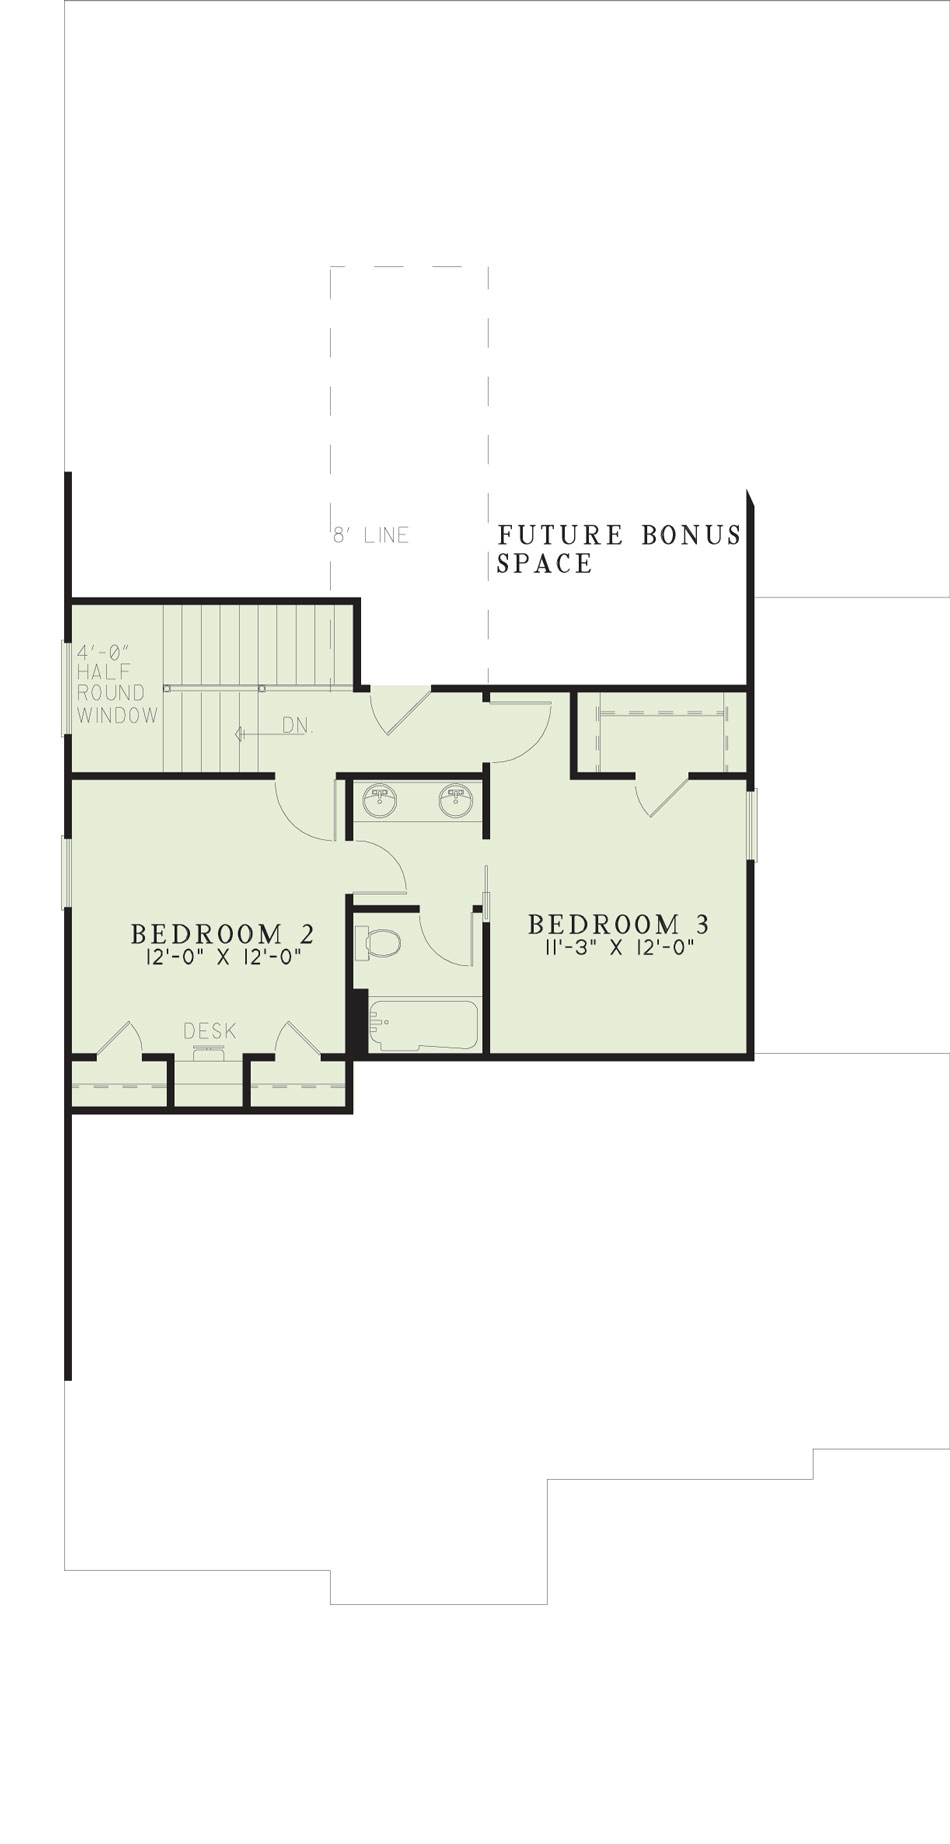 House Plan NDG 391 Upper Floor